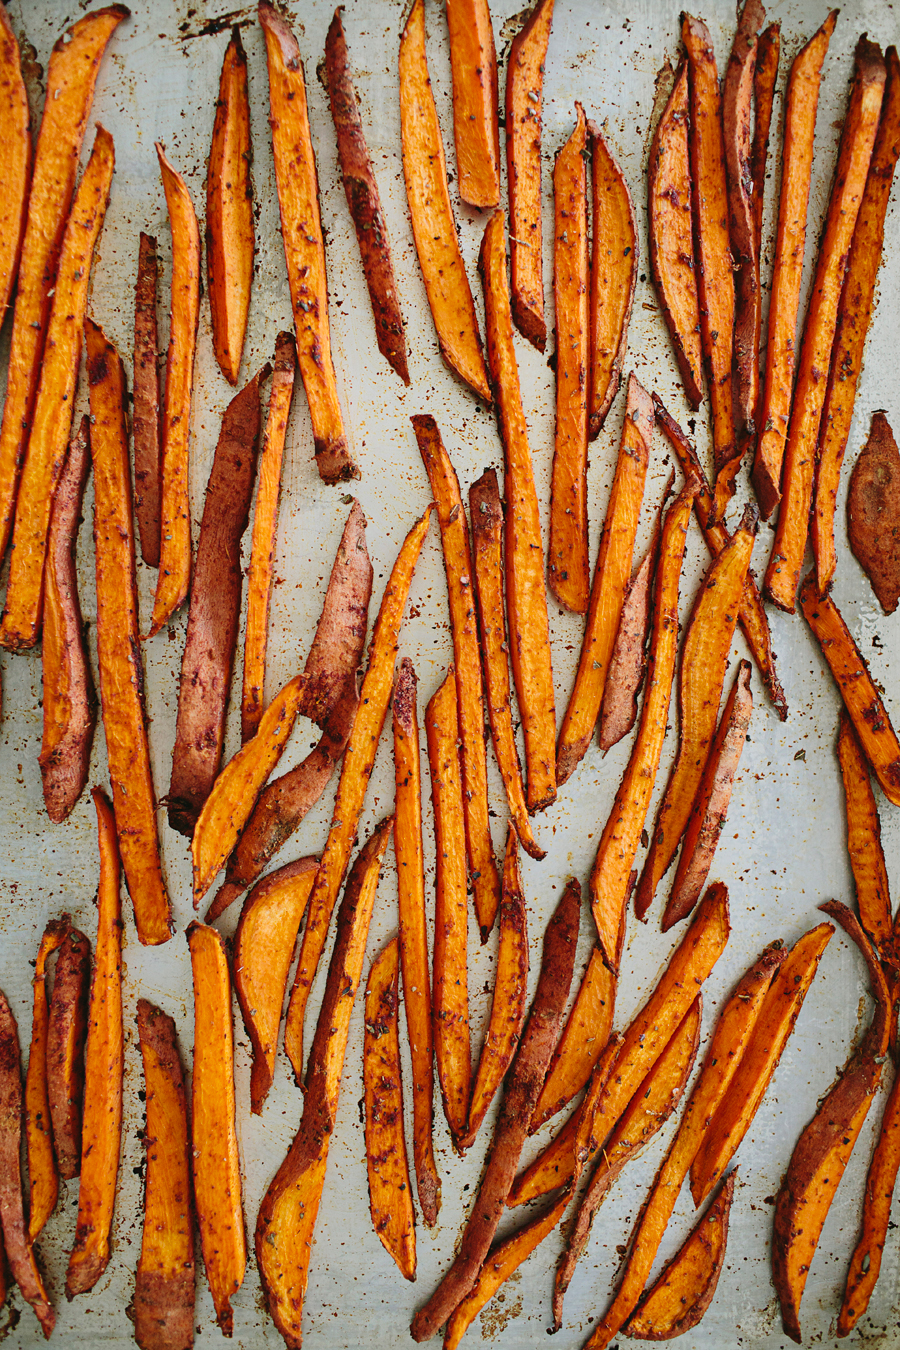 brookecourtney_sweetpotatofries_ovenbaked_frysauce-15.jpg